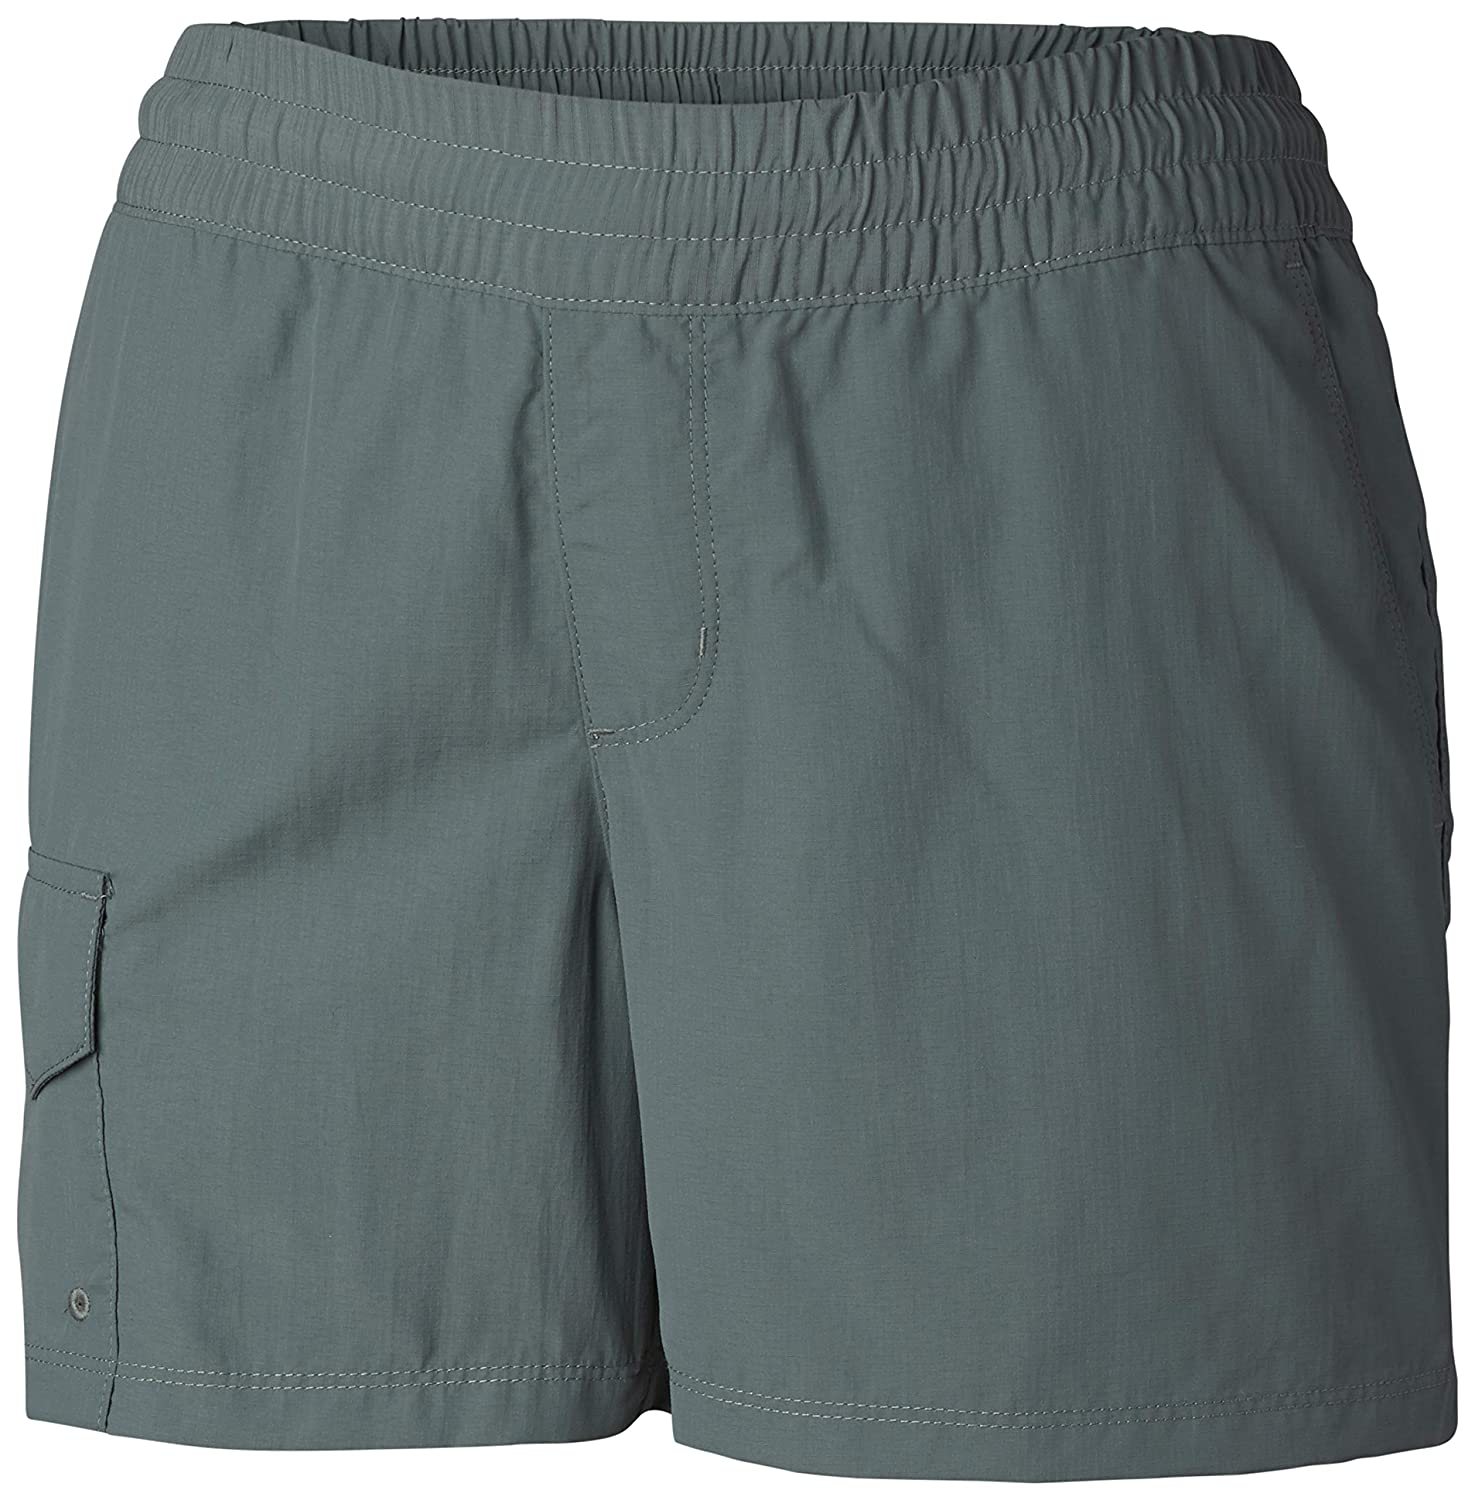 UPF 50 Sun Protection Breathable Columbia Womens Silver Ridge Pull On Short